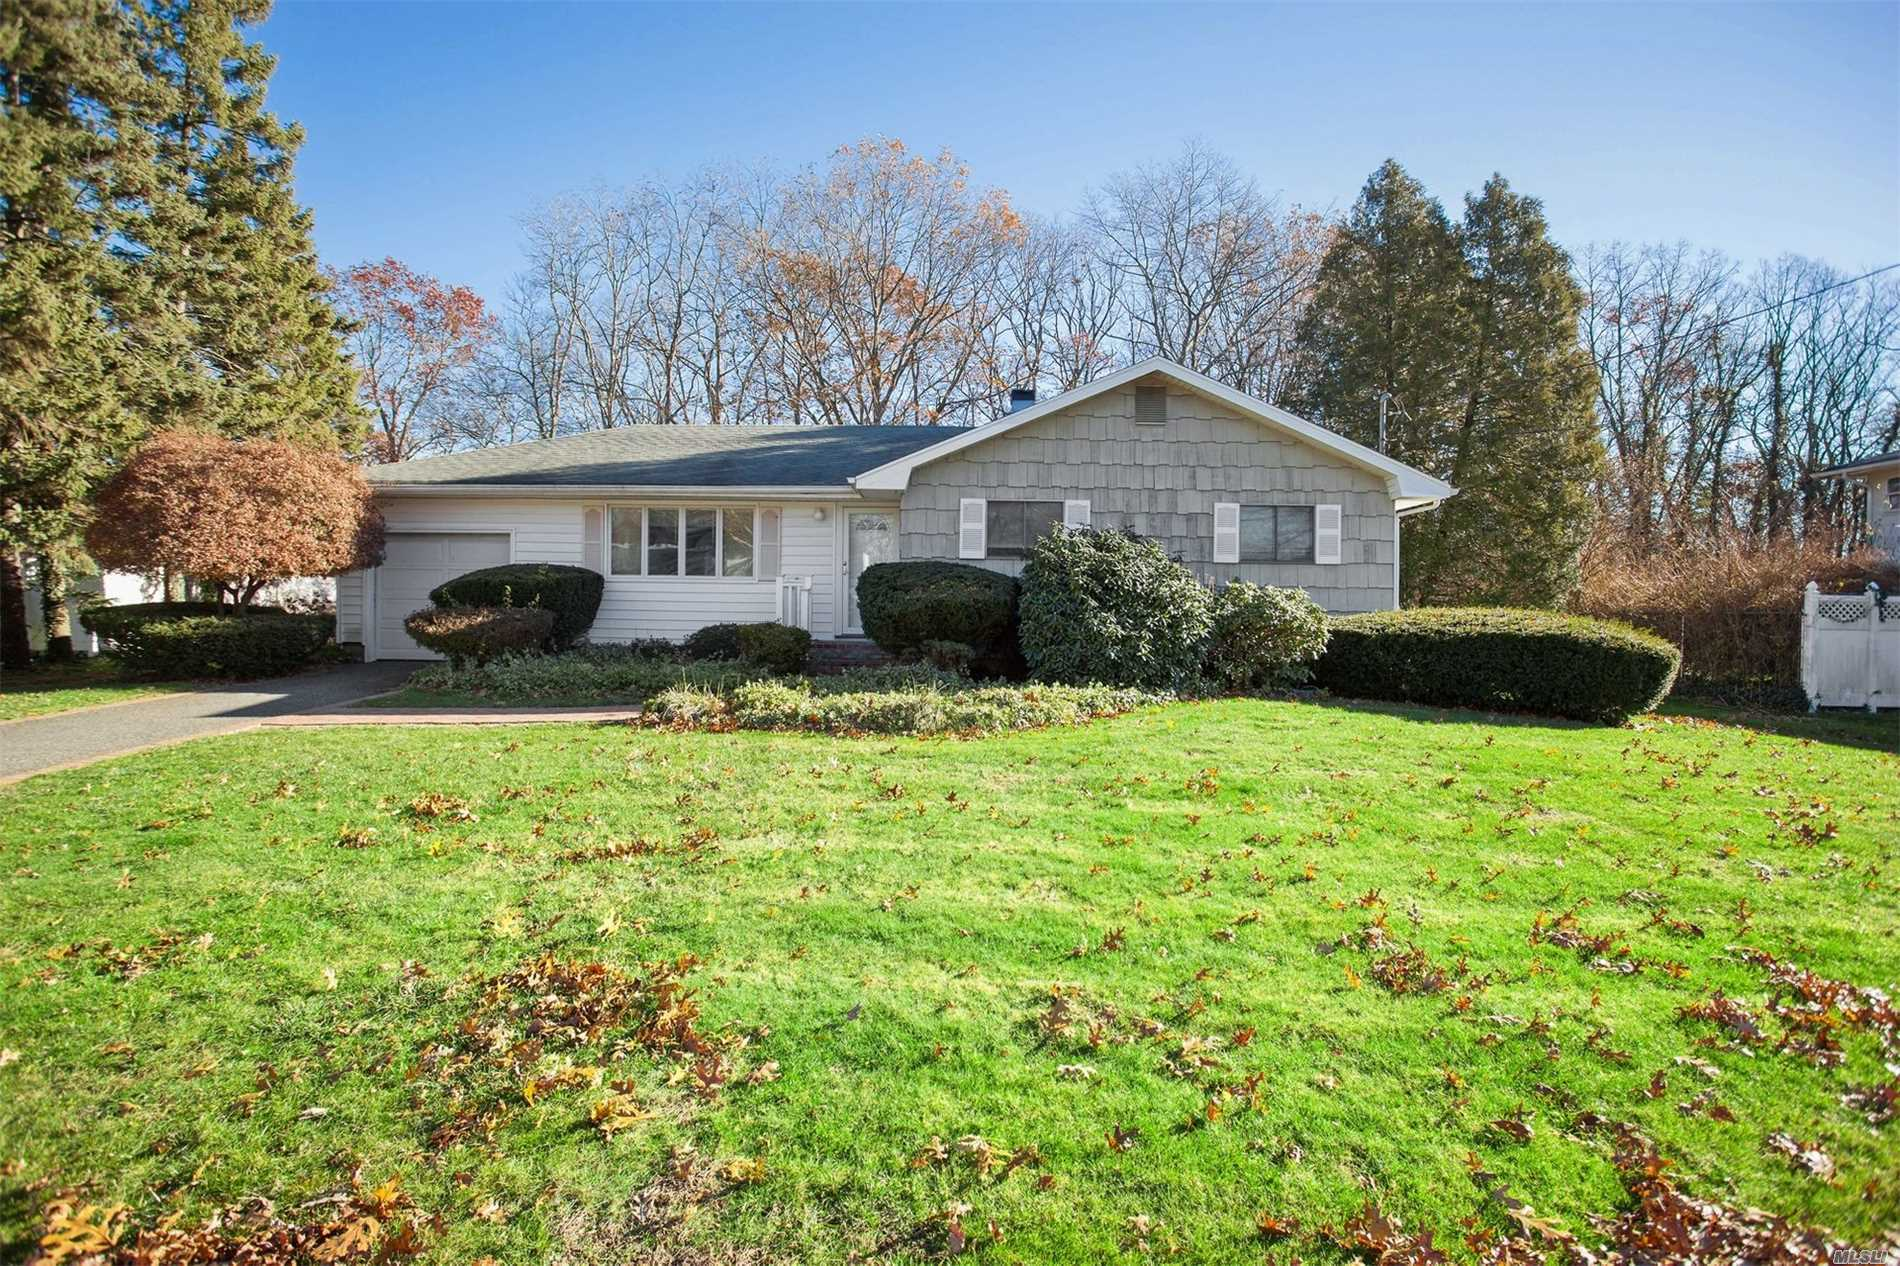 Great 3 Bedroom Ranch With Hardwood Floors, Full Basement, Washer, Dryer & Utilities. Cozy Den With Fireplace, Newer Roof And Central Air .